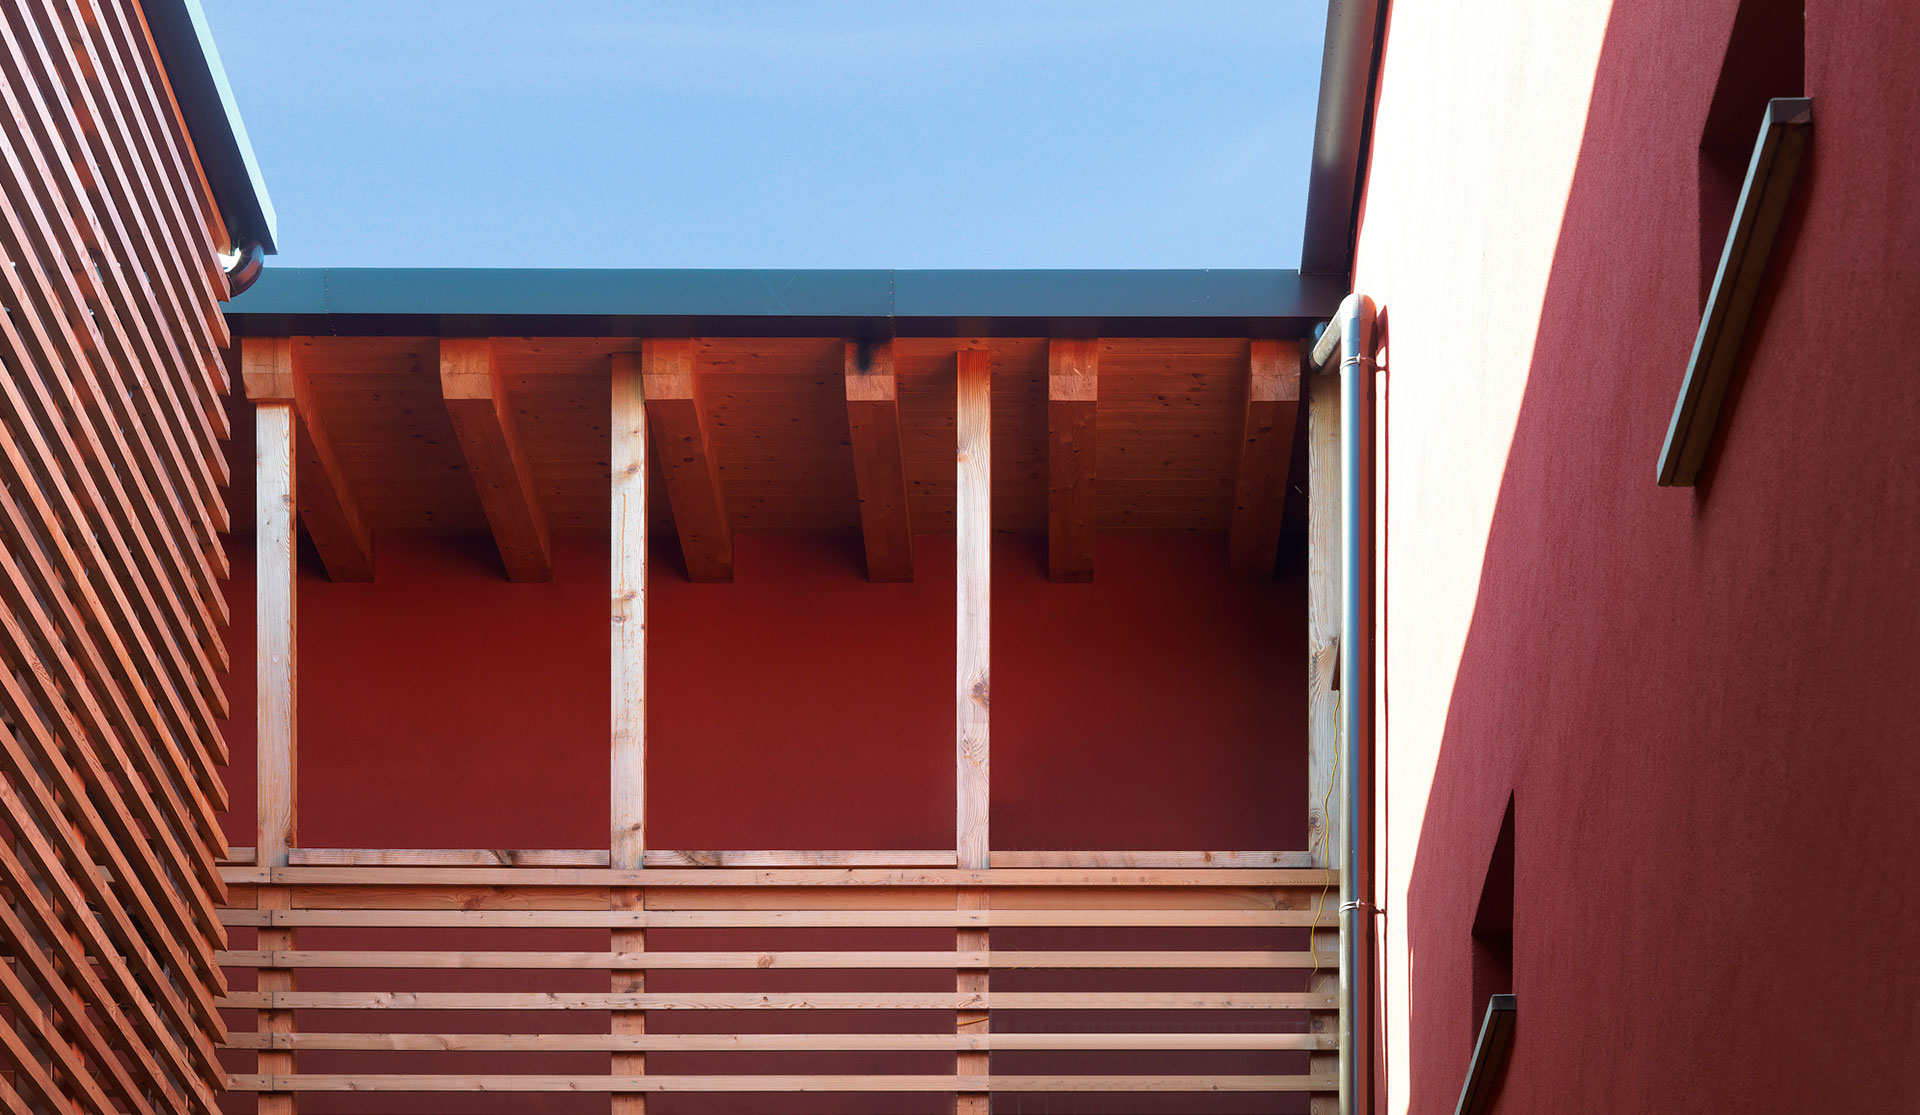 Prefab Social Housing - Treviso (IT)